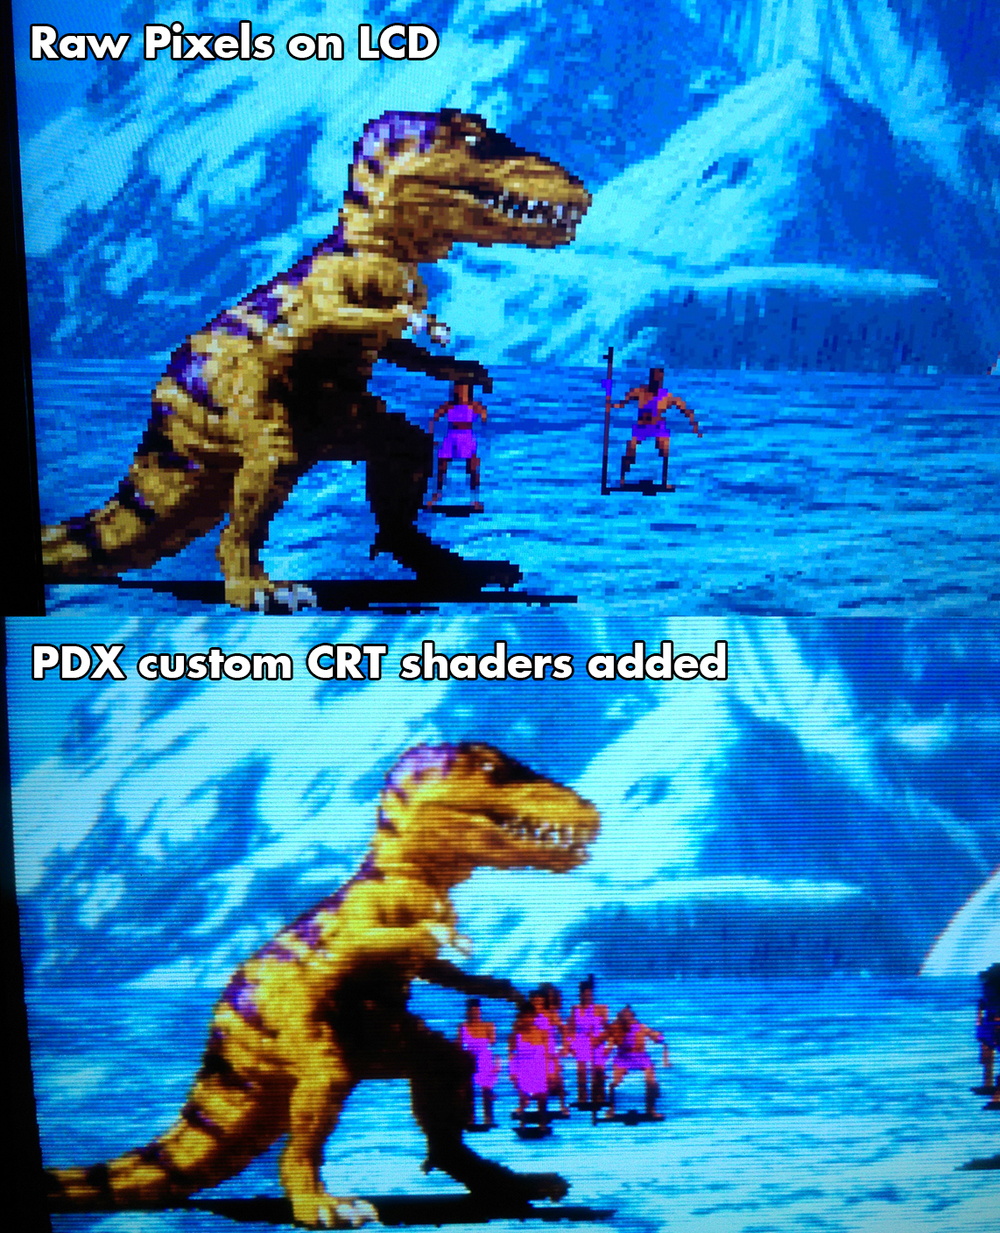 CRT shaders emulate the look of original arcade monitors and improve pixel graphics